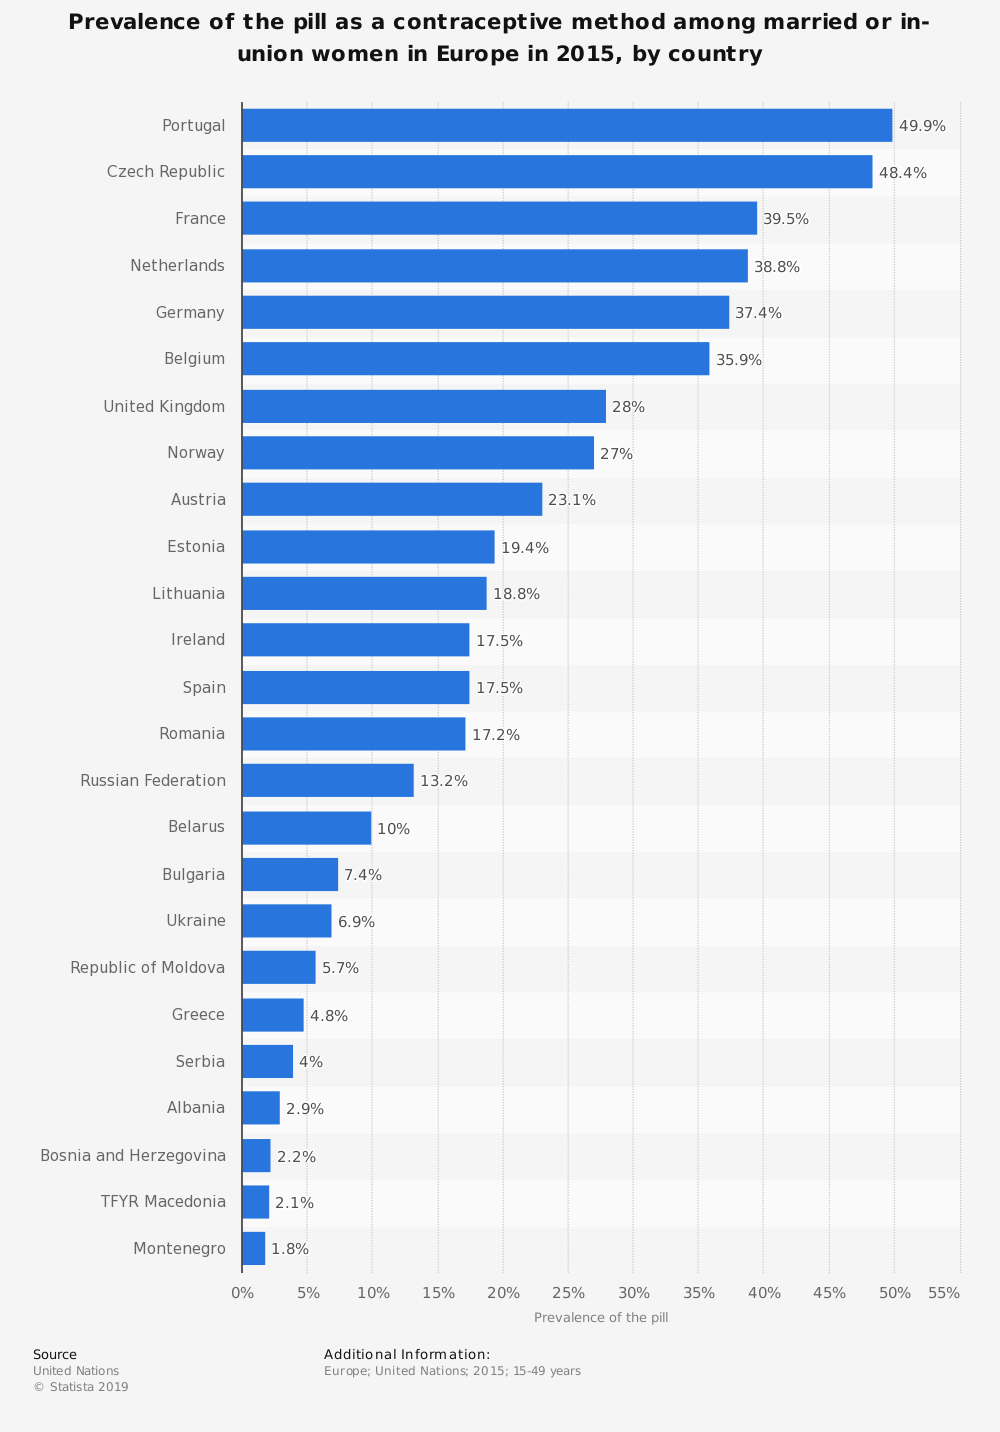 Statistic: Prevalence of the pill as a contraceptive method among married or in-union women in Europe in 2015, by country | Statista